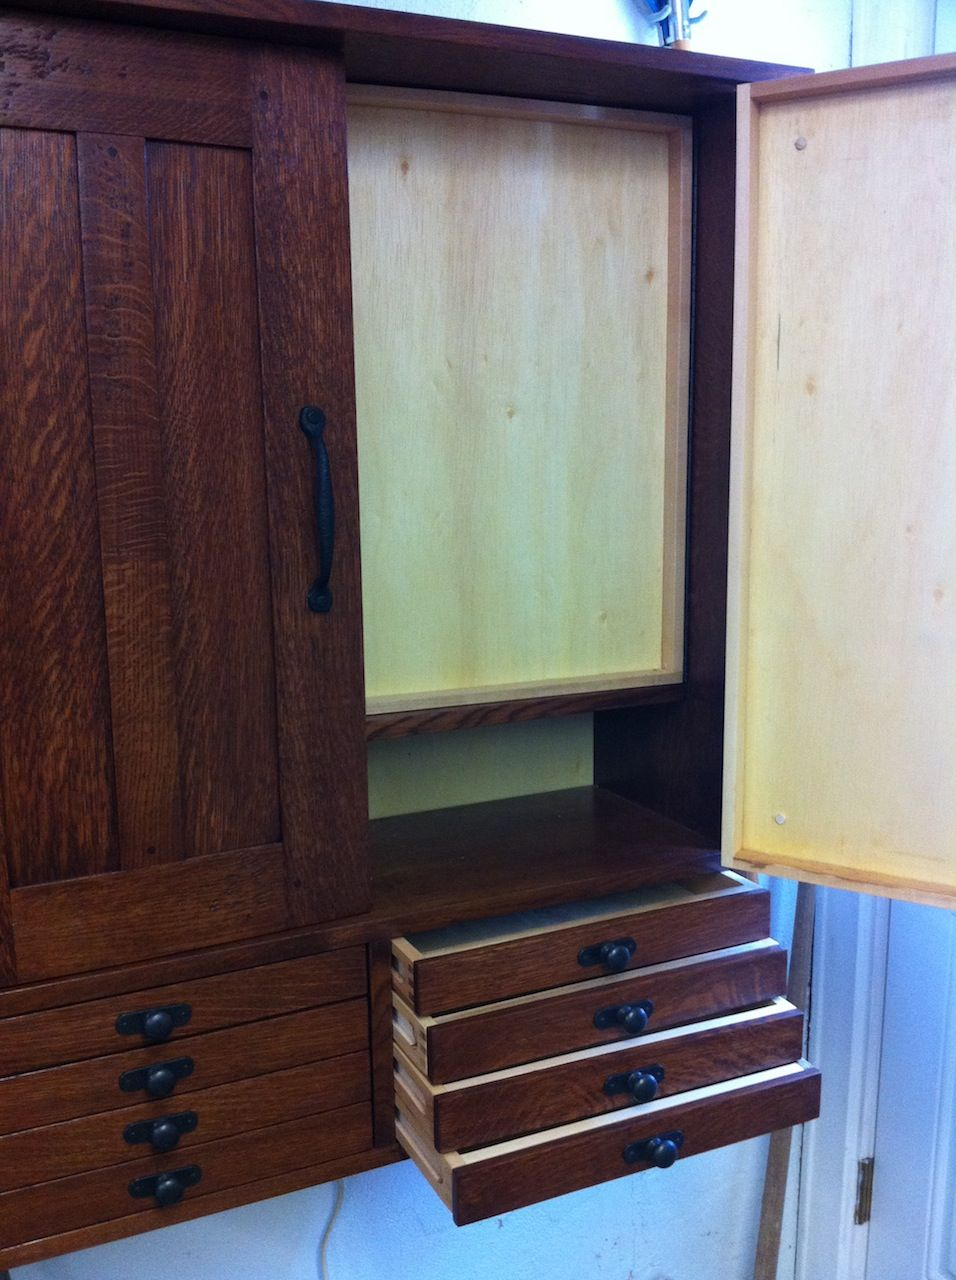 An Elegant Tool Cabinet Crafted With Care!